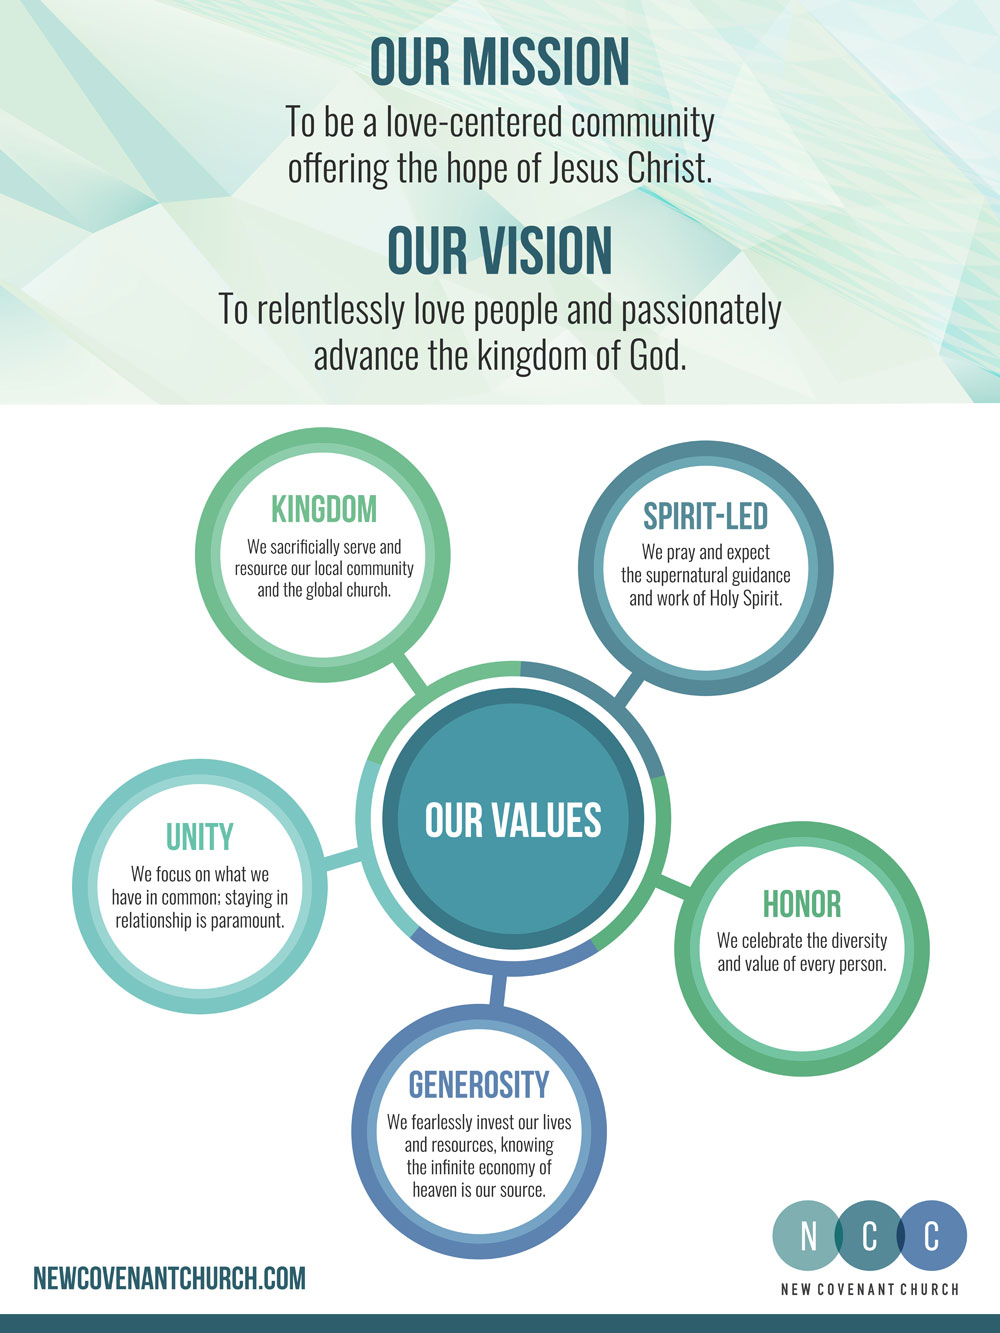 New Covenant Church - Mission, Vision, and Values